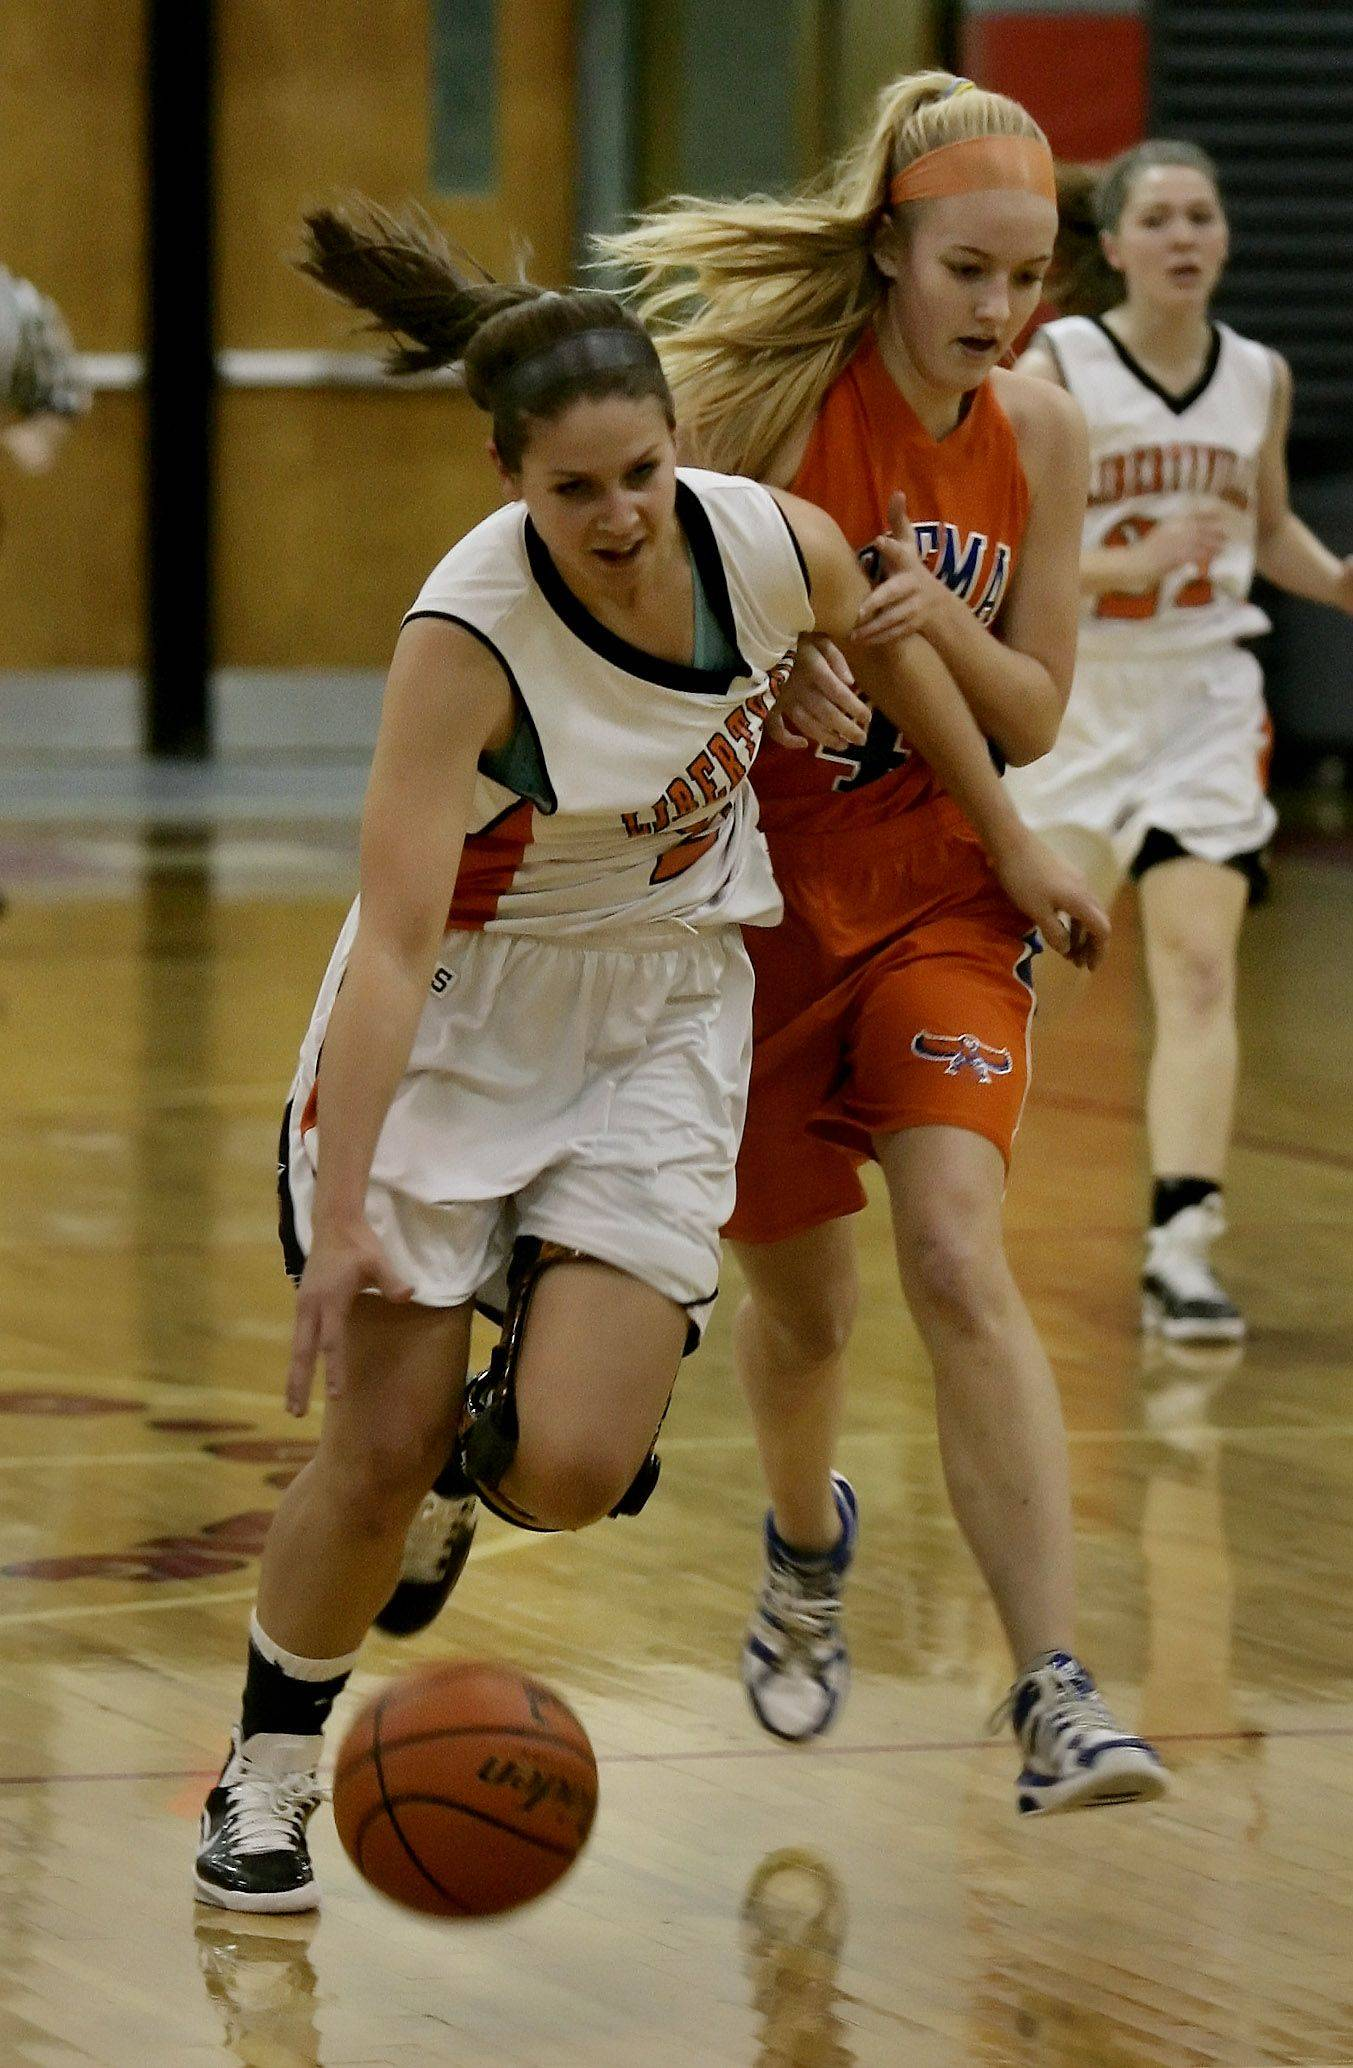 Libertyville's Kaca Savatic is fouled as she breaks away from Hoffman Estates guard Mary Pettit Wednesday in Mundelein.